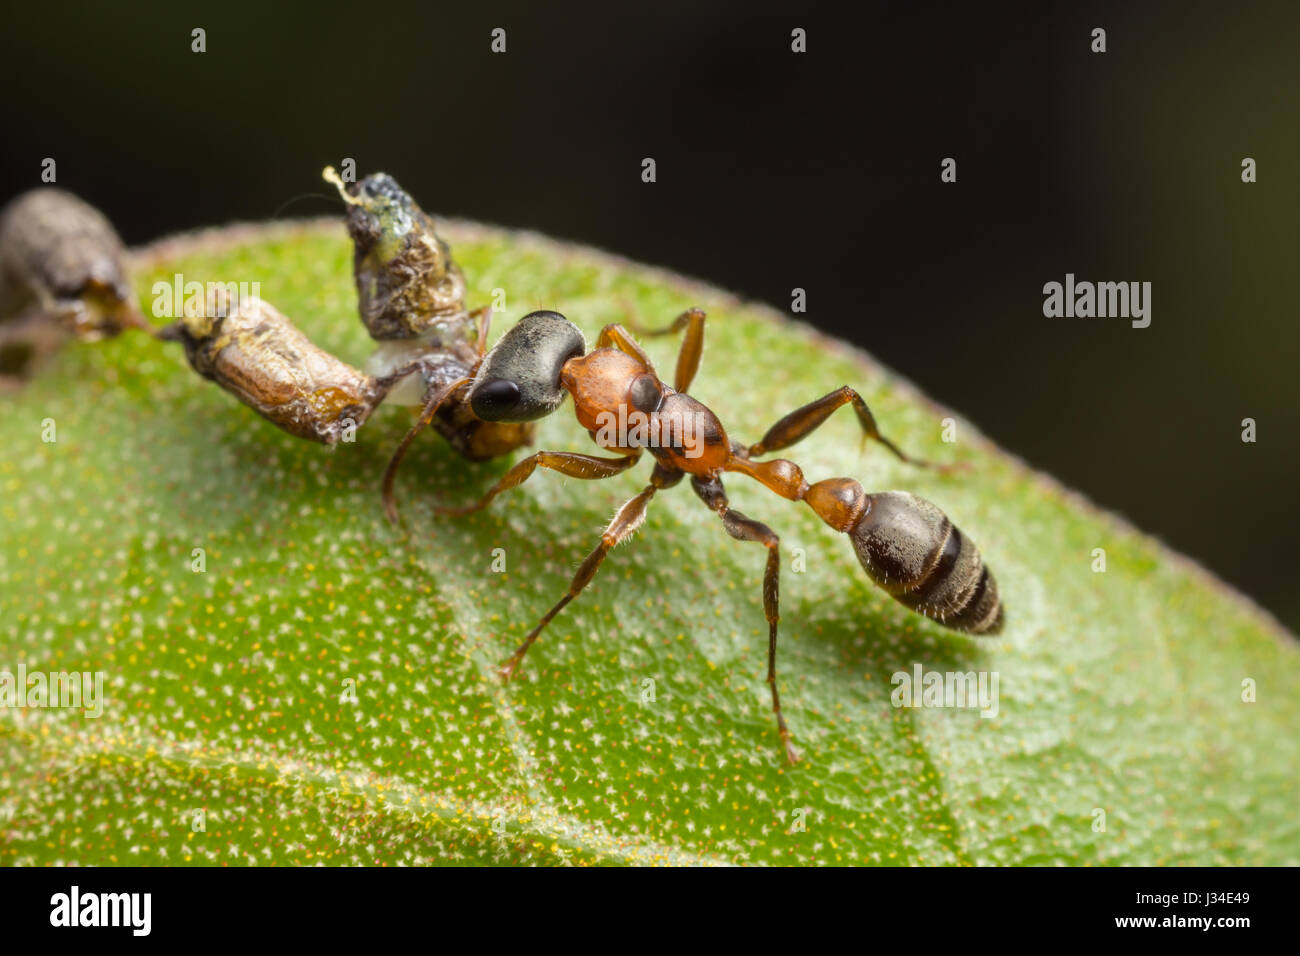 A Graceful Twig Ant (Pseudomyrmex gracilis) holds on to its caught larval prey. - Stock Image